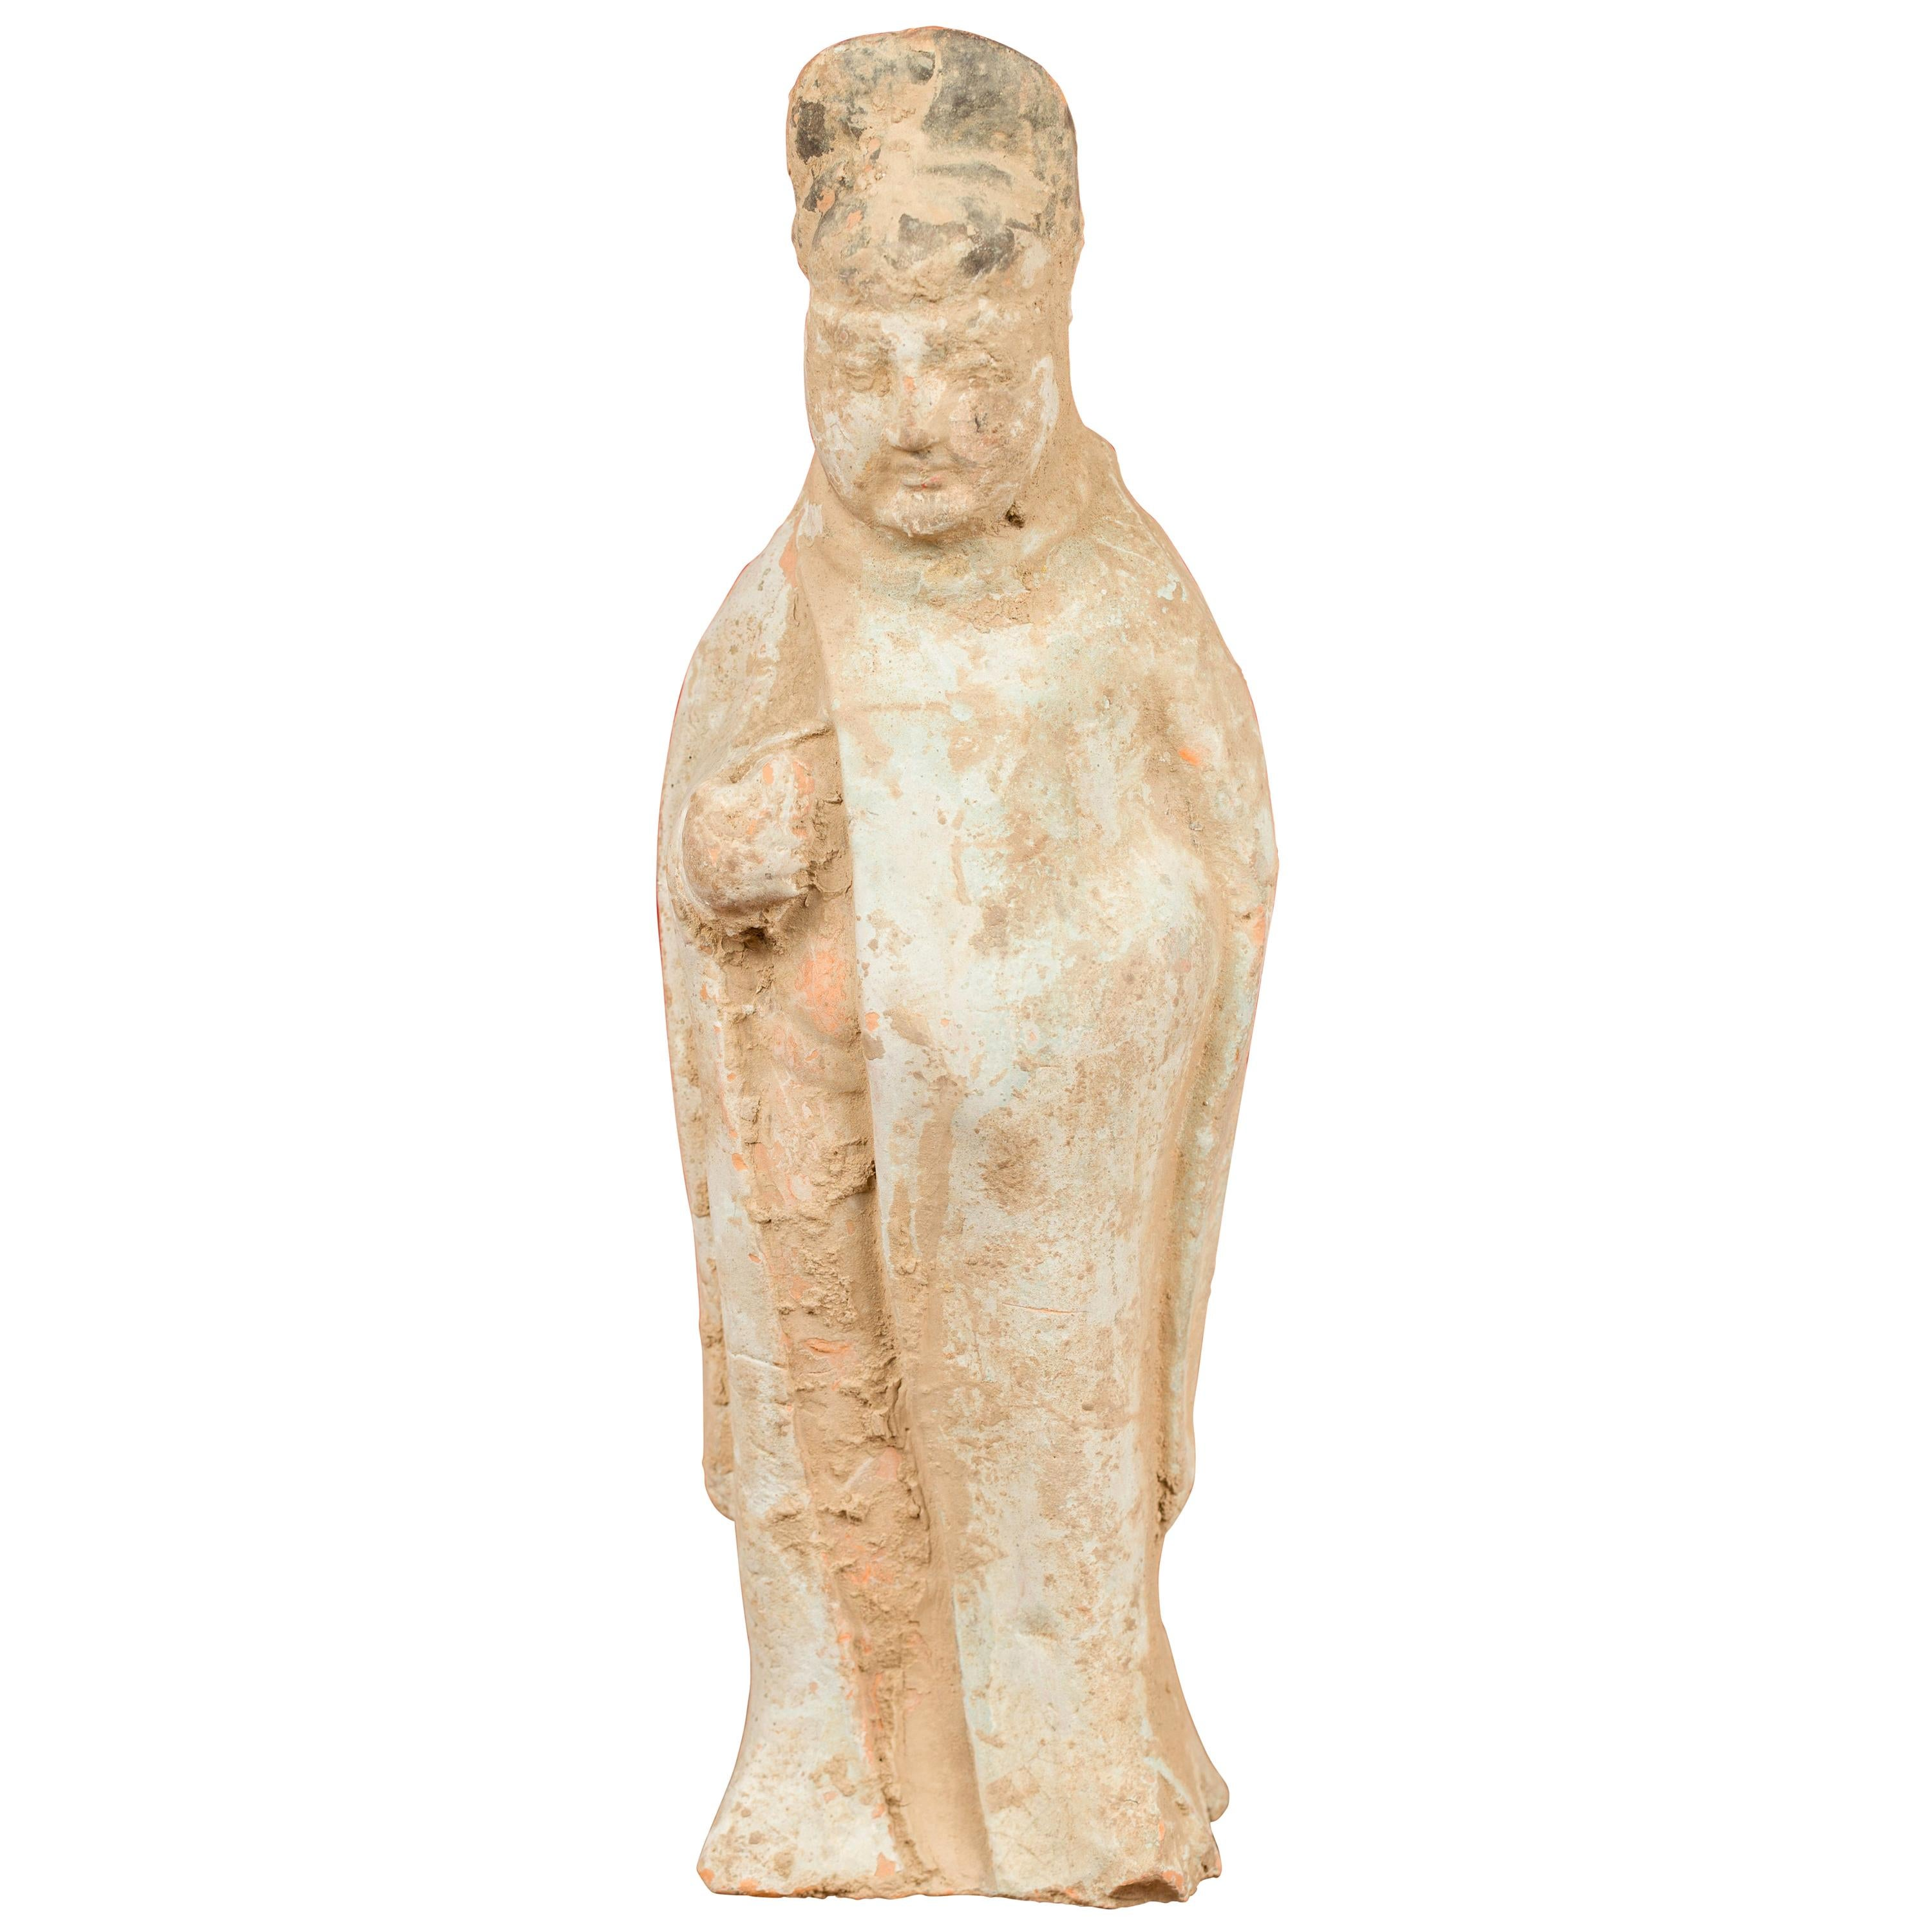 Qing Dynasty 19th Century Terracotta Burial Statue of a Chinese Official